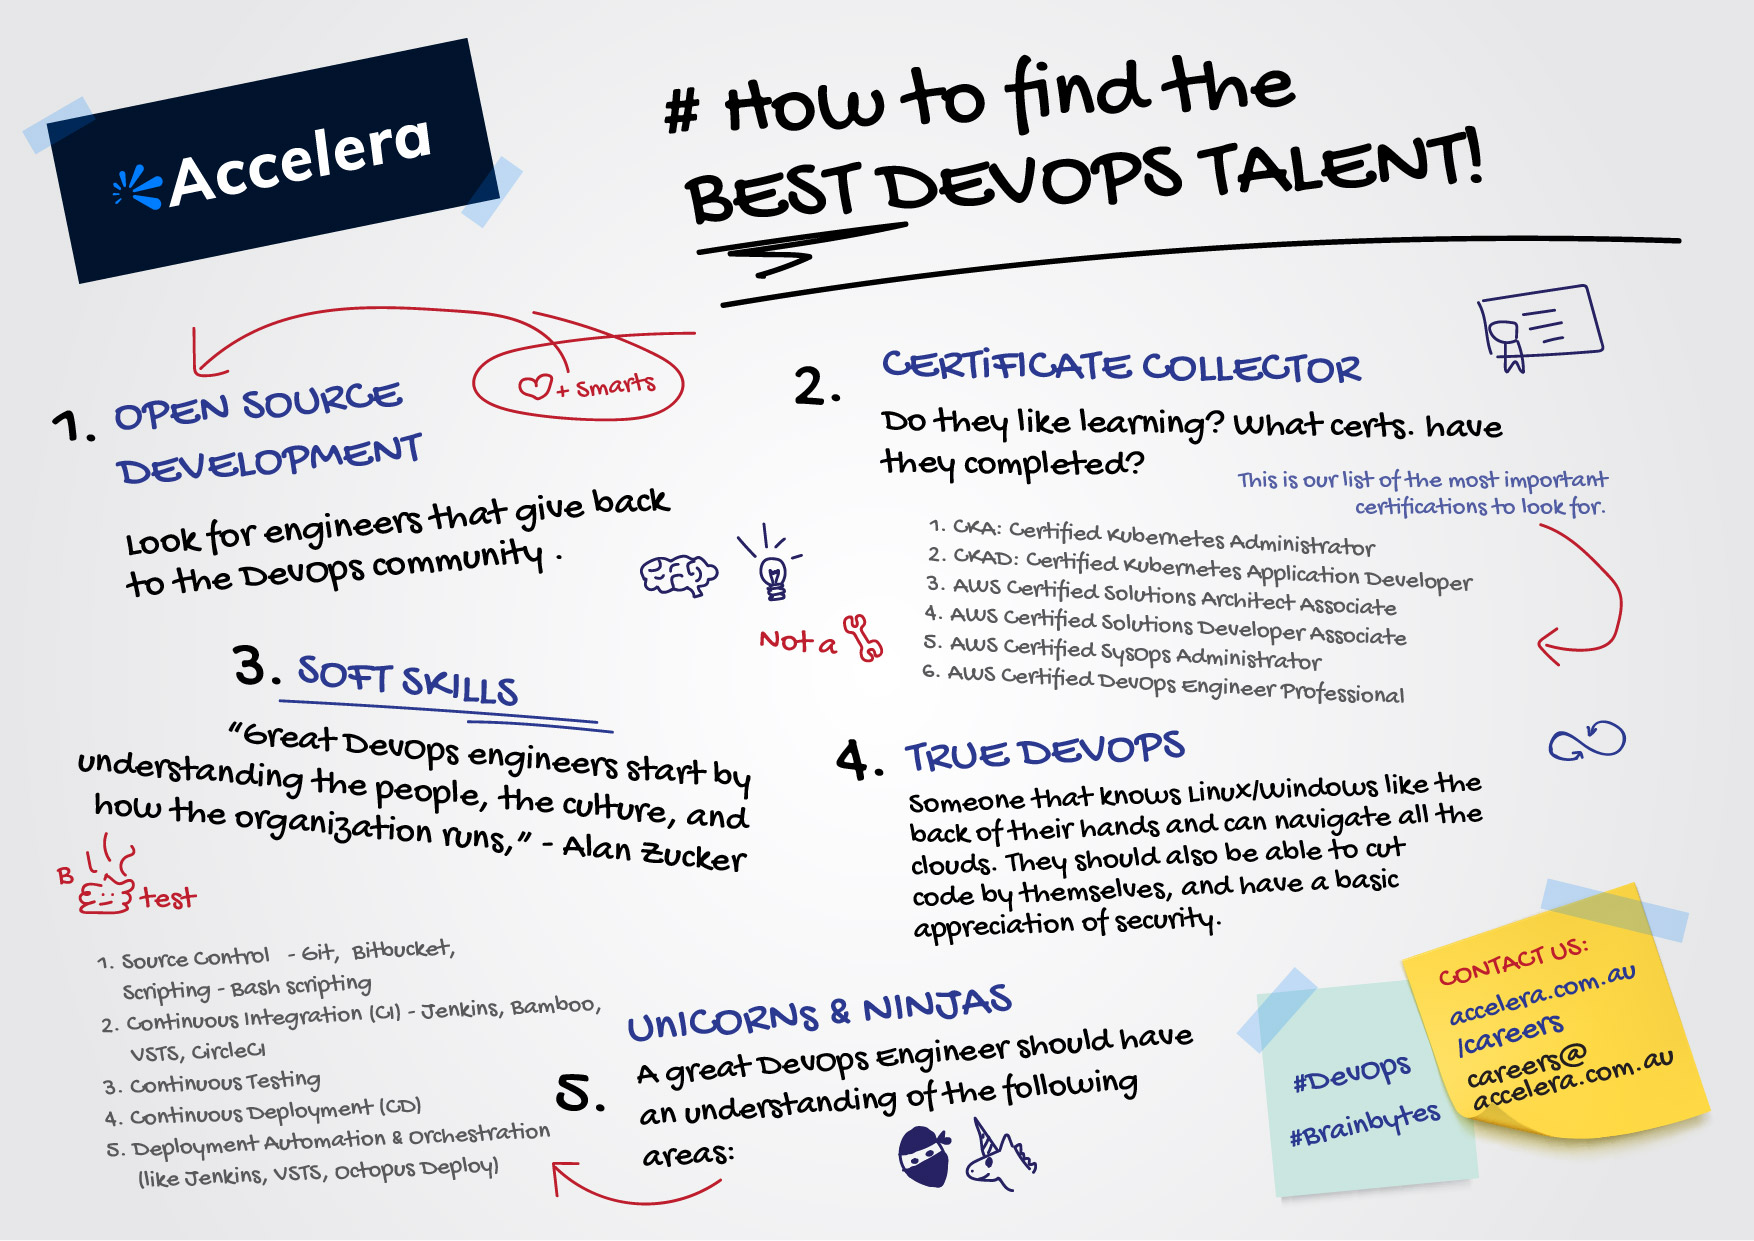 How to find the best DevOps talent